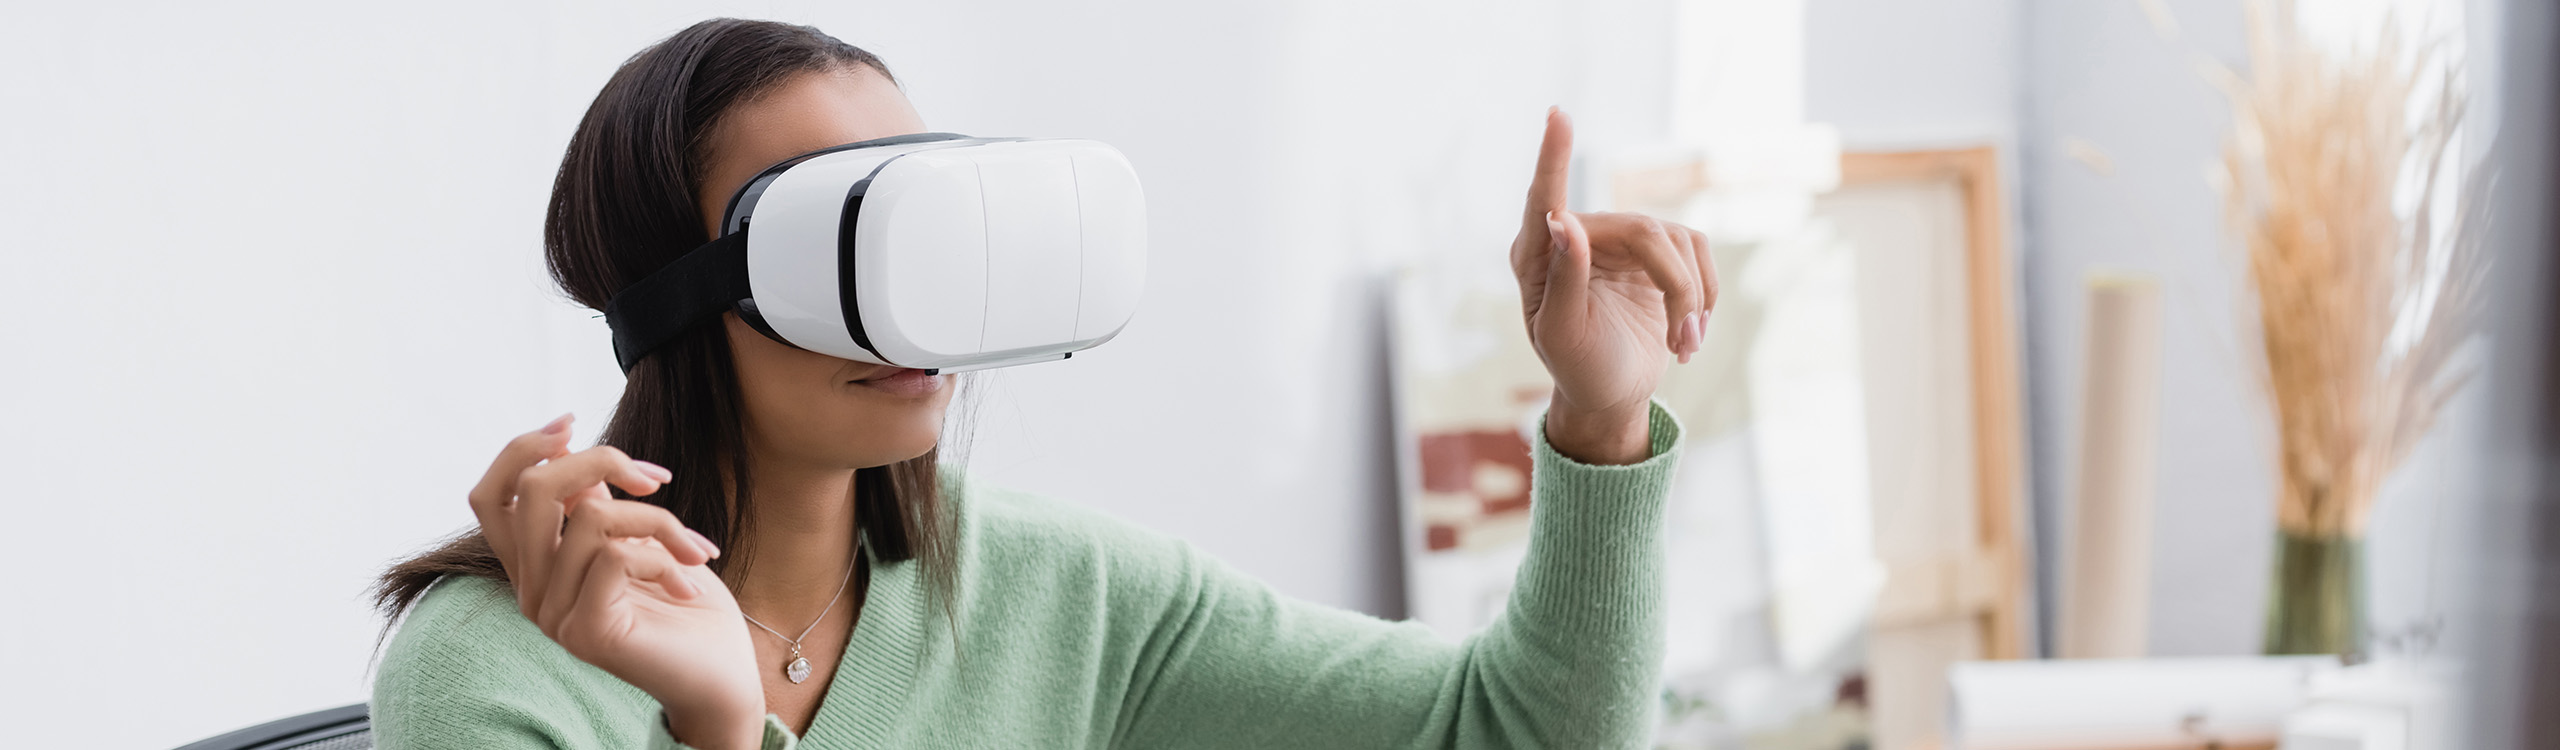 Fund Your Forex Accounts and eCurency AccountsQuickly With OnlineNaira